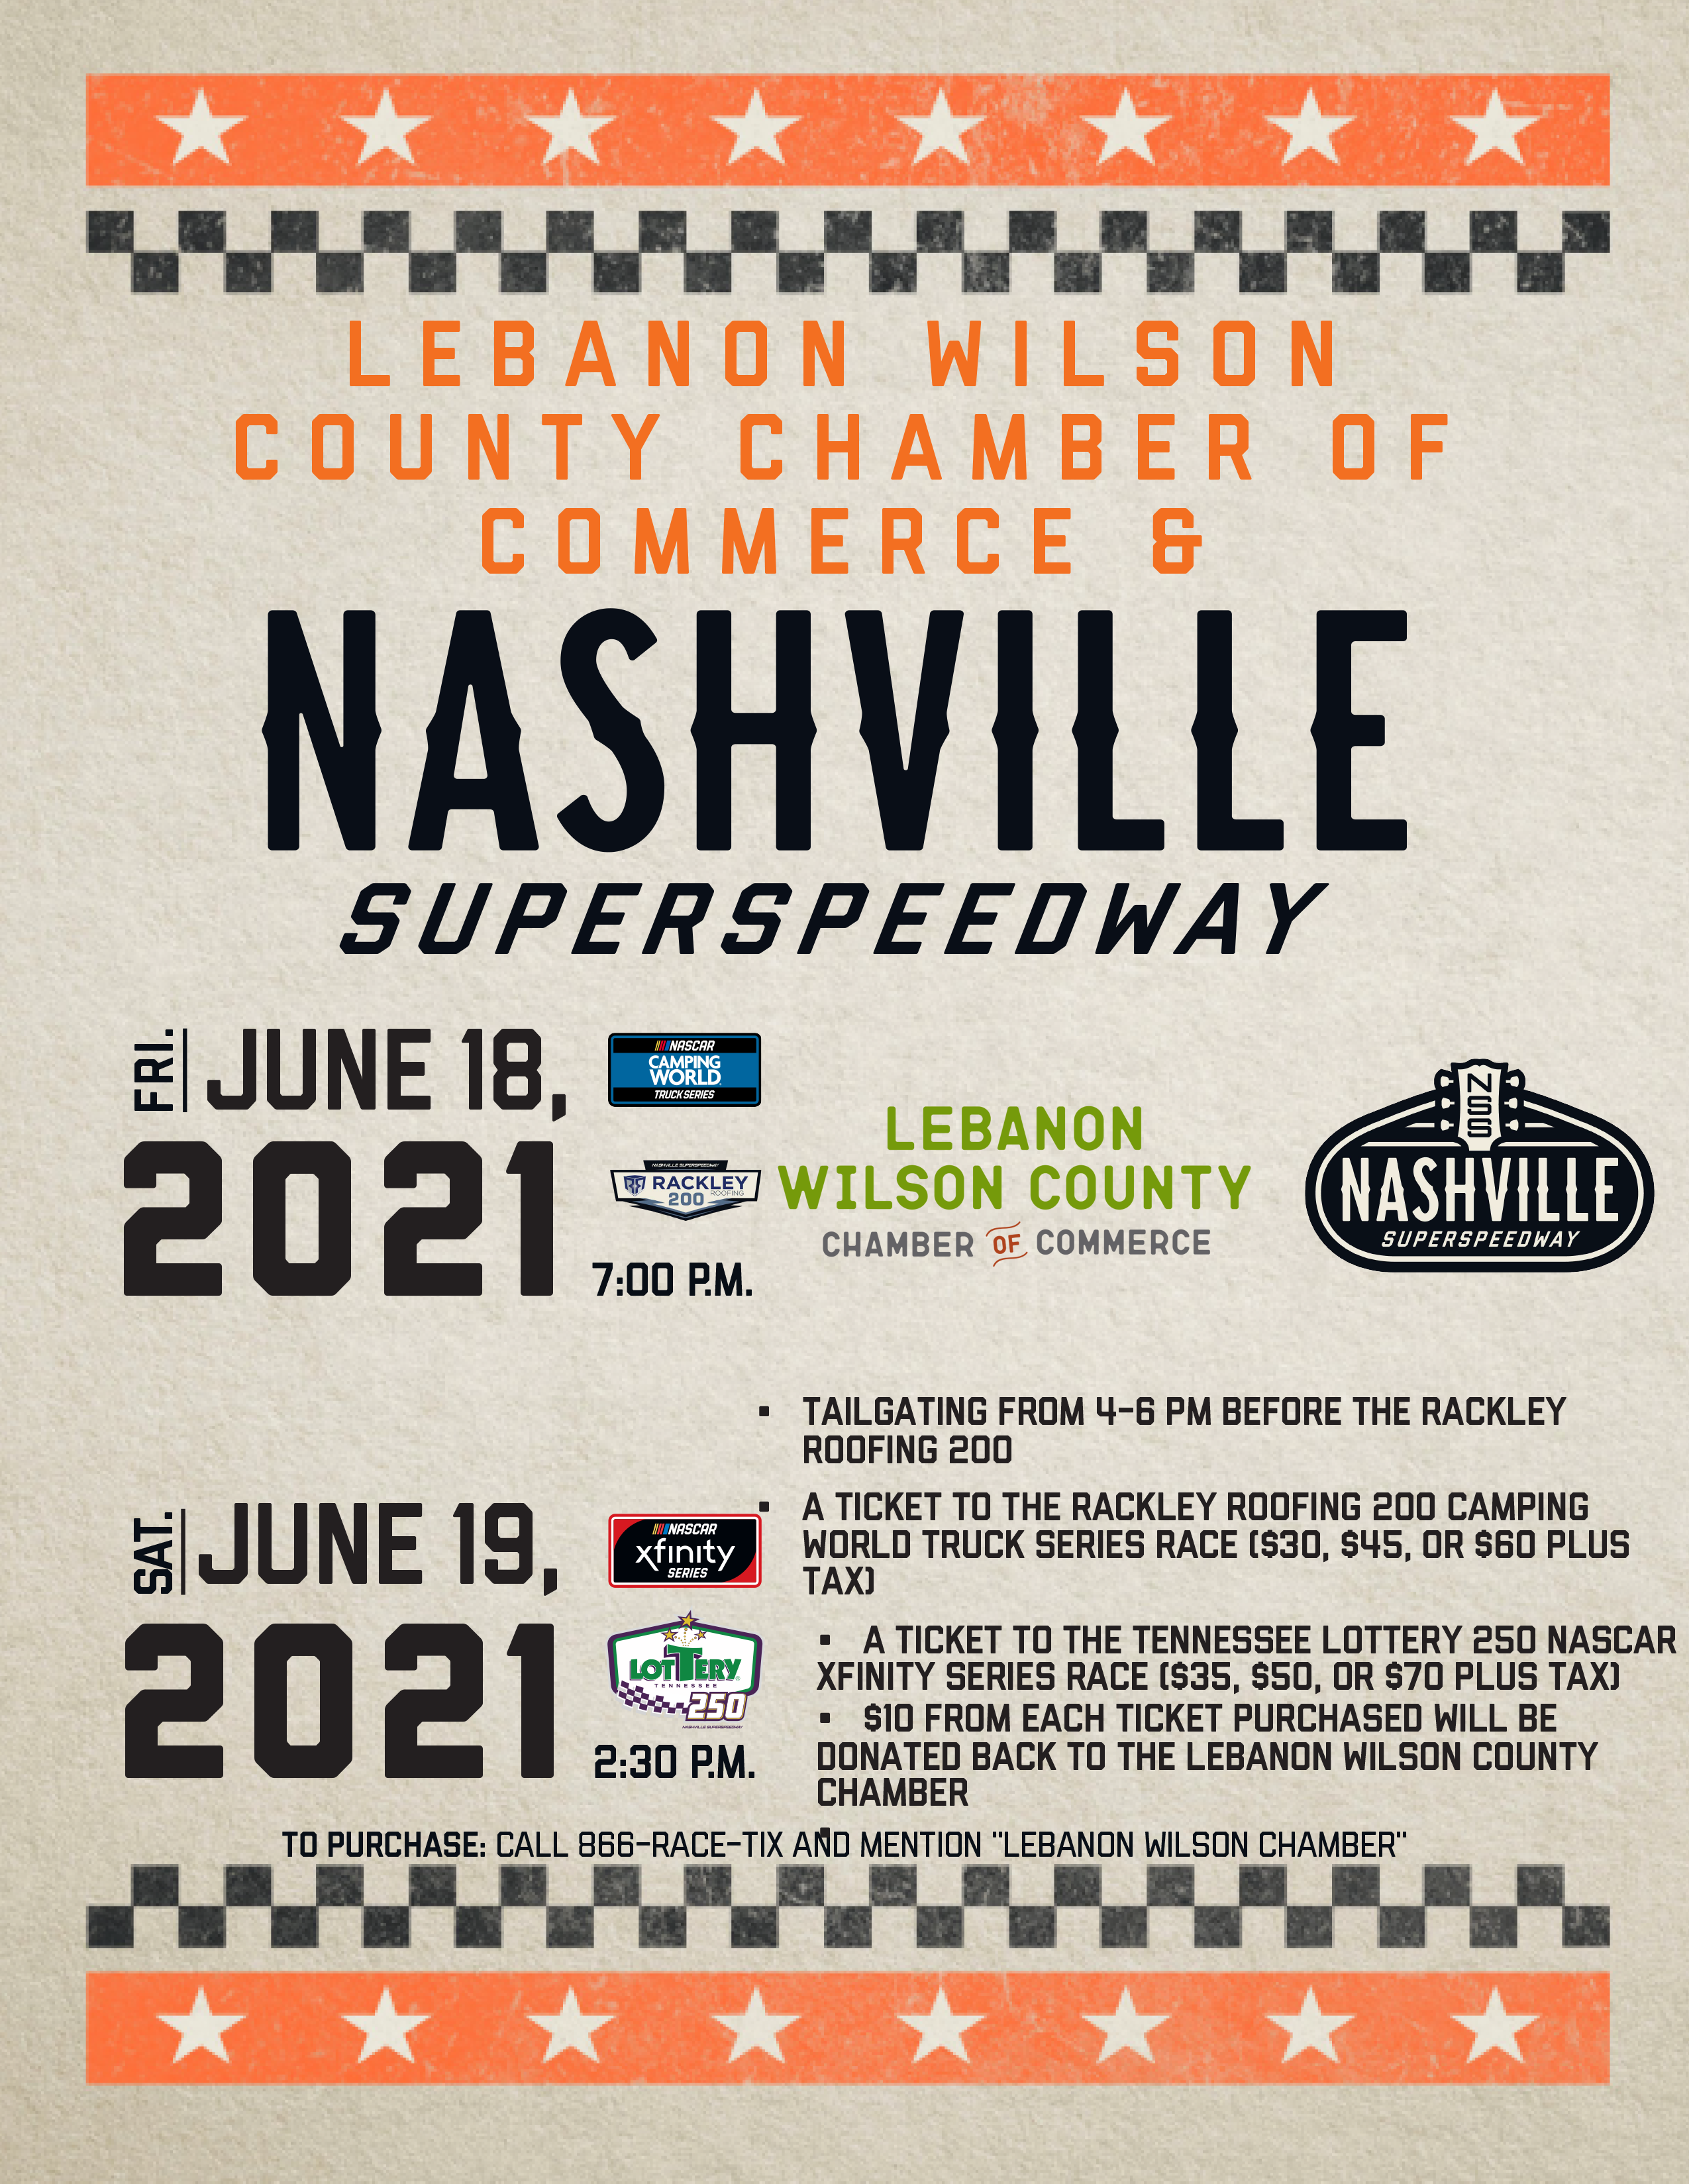 Chamber Tailgate at the Nashville Superspeedway